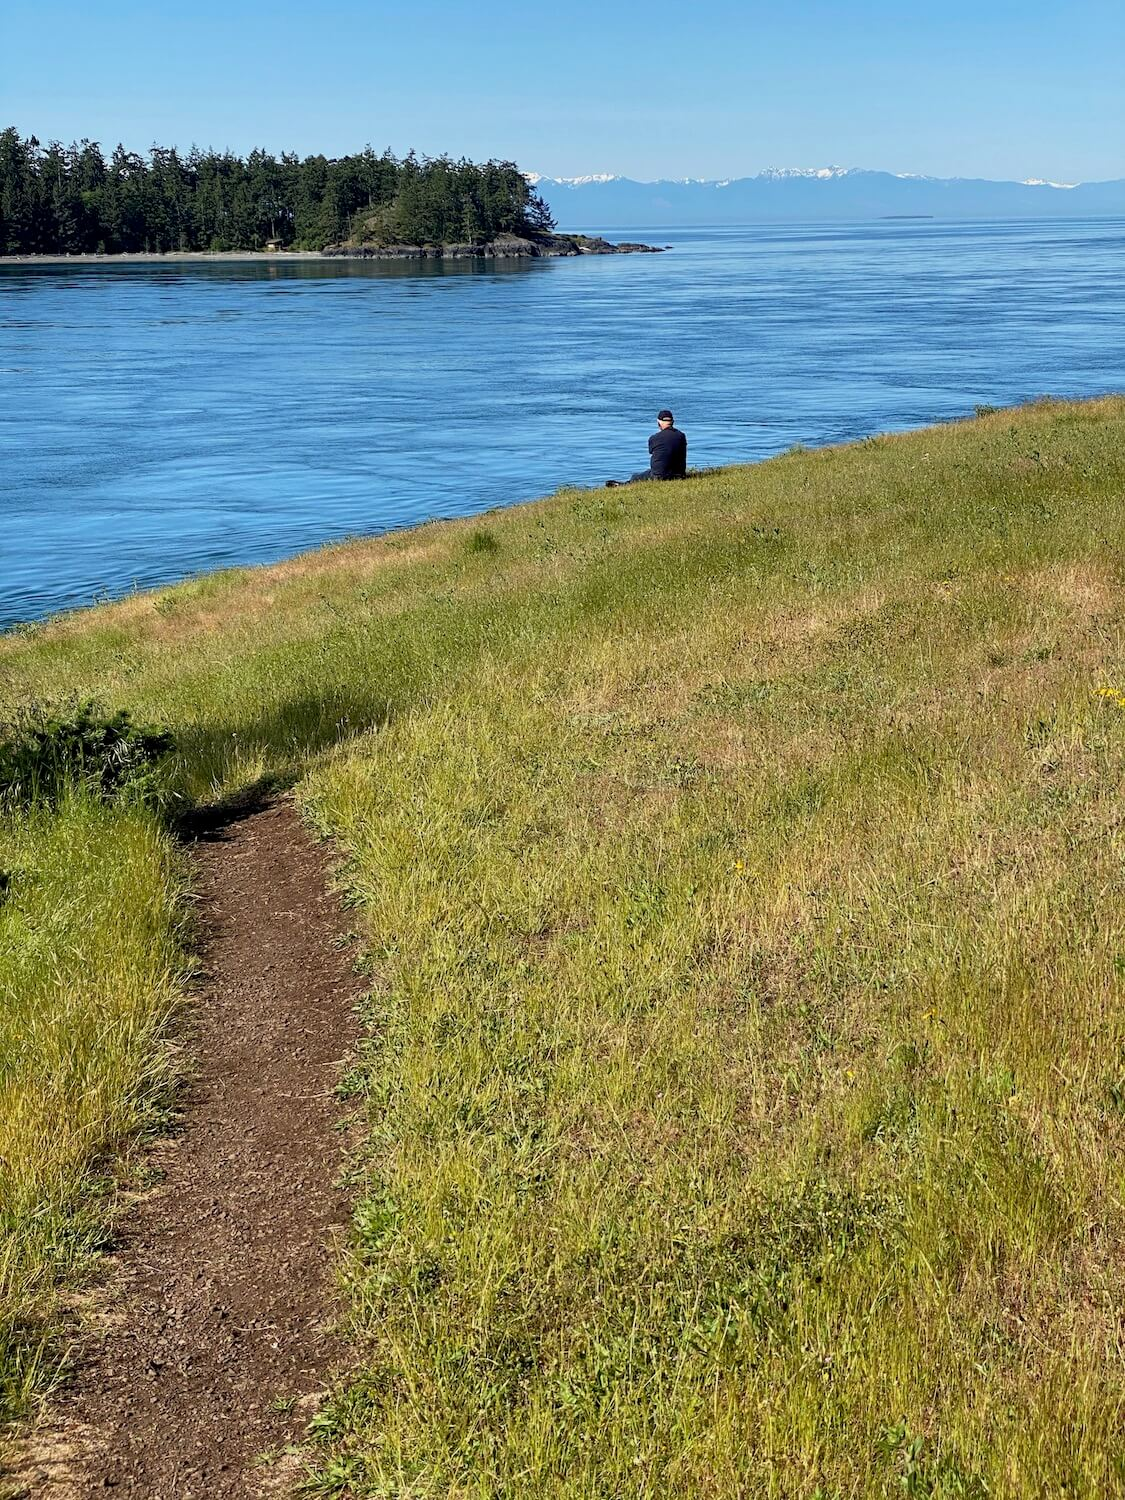 A day trip from Seattle to Deception Pass and Anacortes is food for the soul on a beautiful day like the one in this picture.  A man sits on a wide grassy meadow overlooking a flowing body of water that is part of the Salish Sea. Across the water is more land with gray sandy beaches and tall green firs.  In the far distance the Olympic Mountains rise up with bits of snow covered peaks.